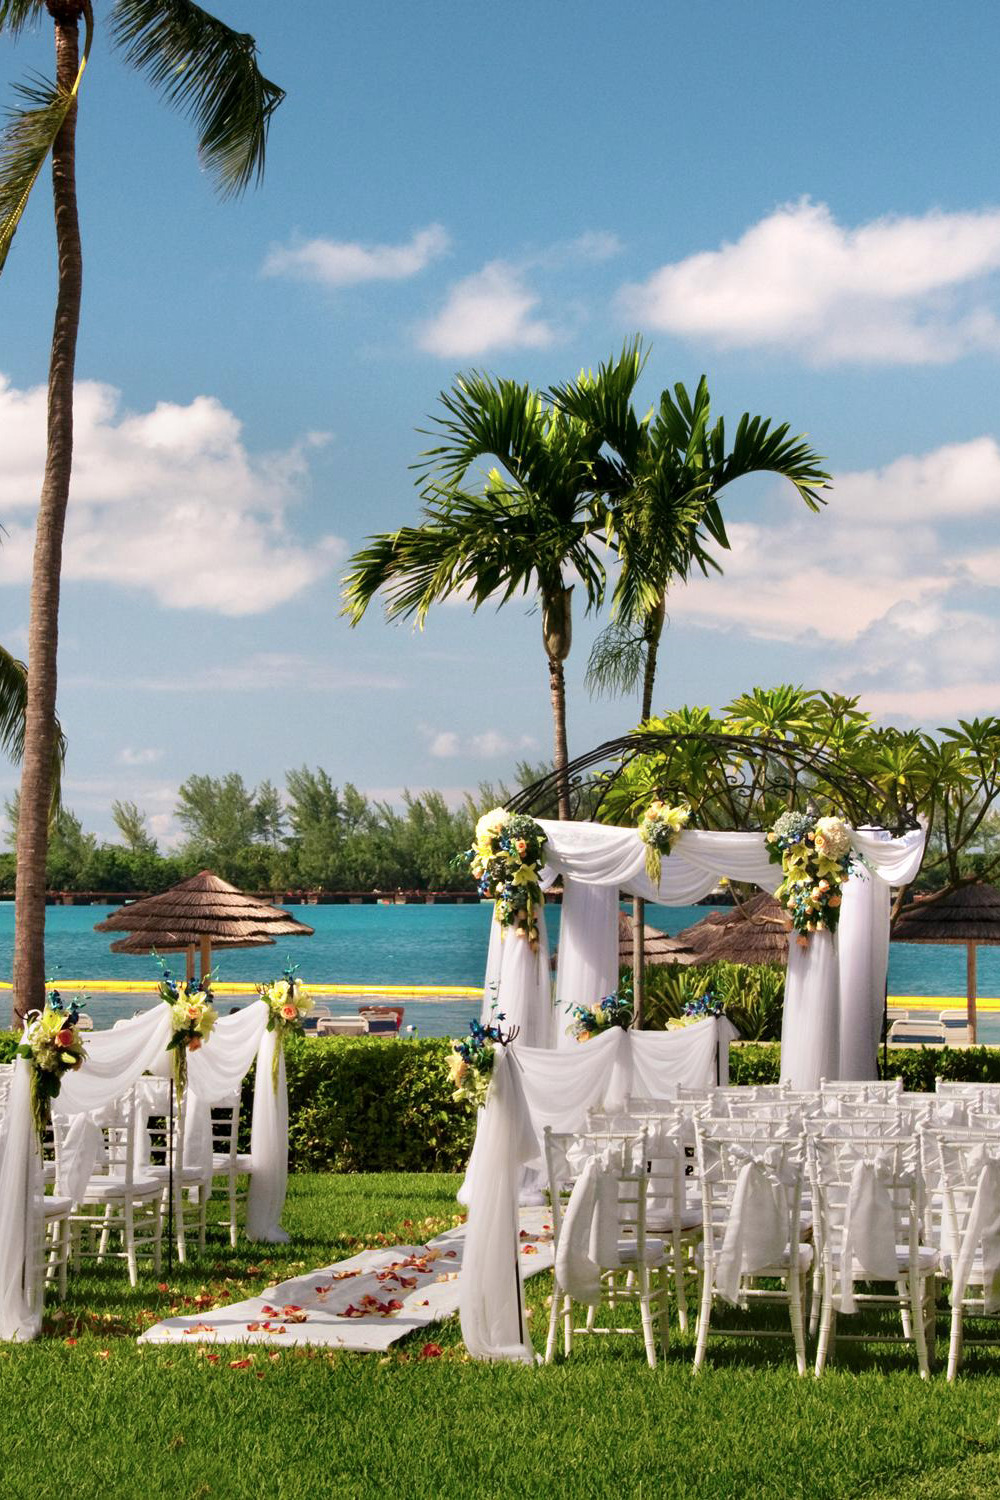 wedding venue at the Hilton in the Bahamas